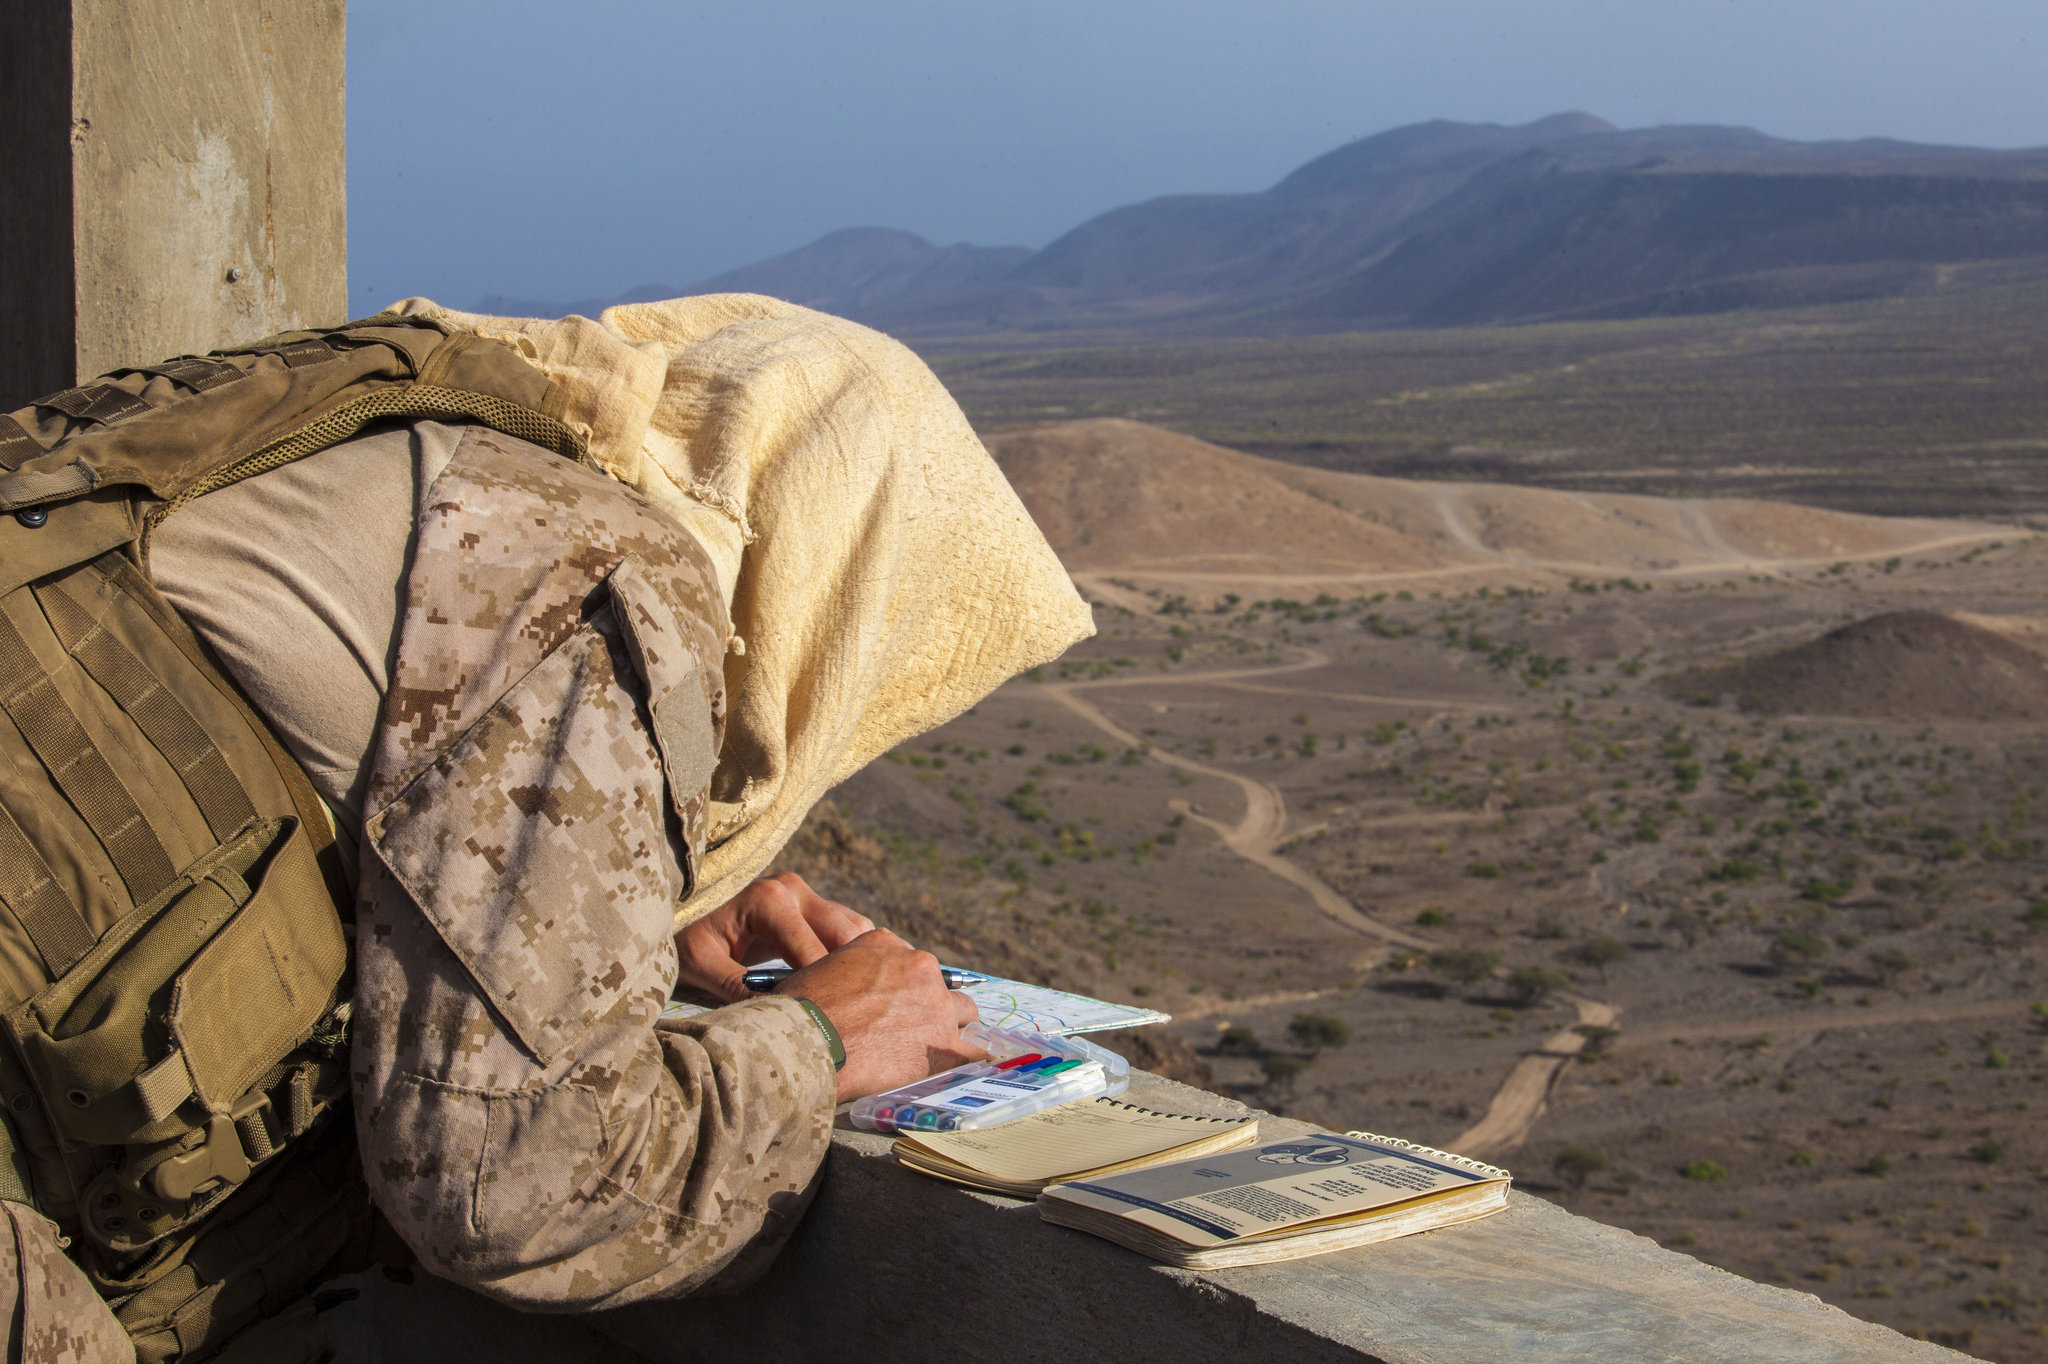 A 26th Marine Expeditionary Unit Maritime Raid Force Marine finds target locations on a map prior to conducting a joint terminal attack control training exercise at an observation post in Djibouti, Africa, May 30, 2013